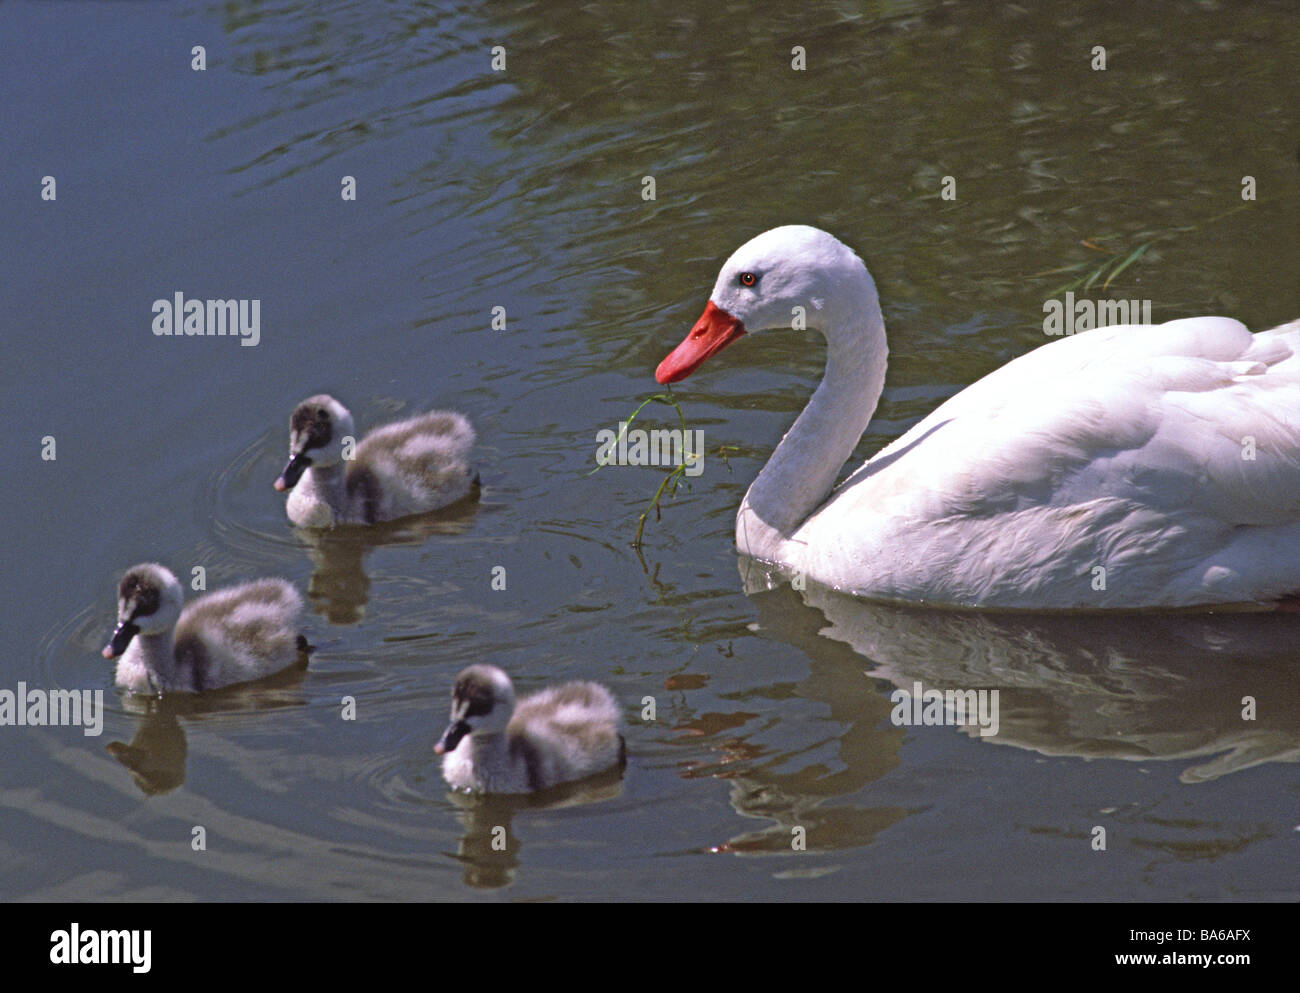 Coscoroba Swan on water with three young cygnets. - Stock Image